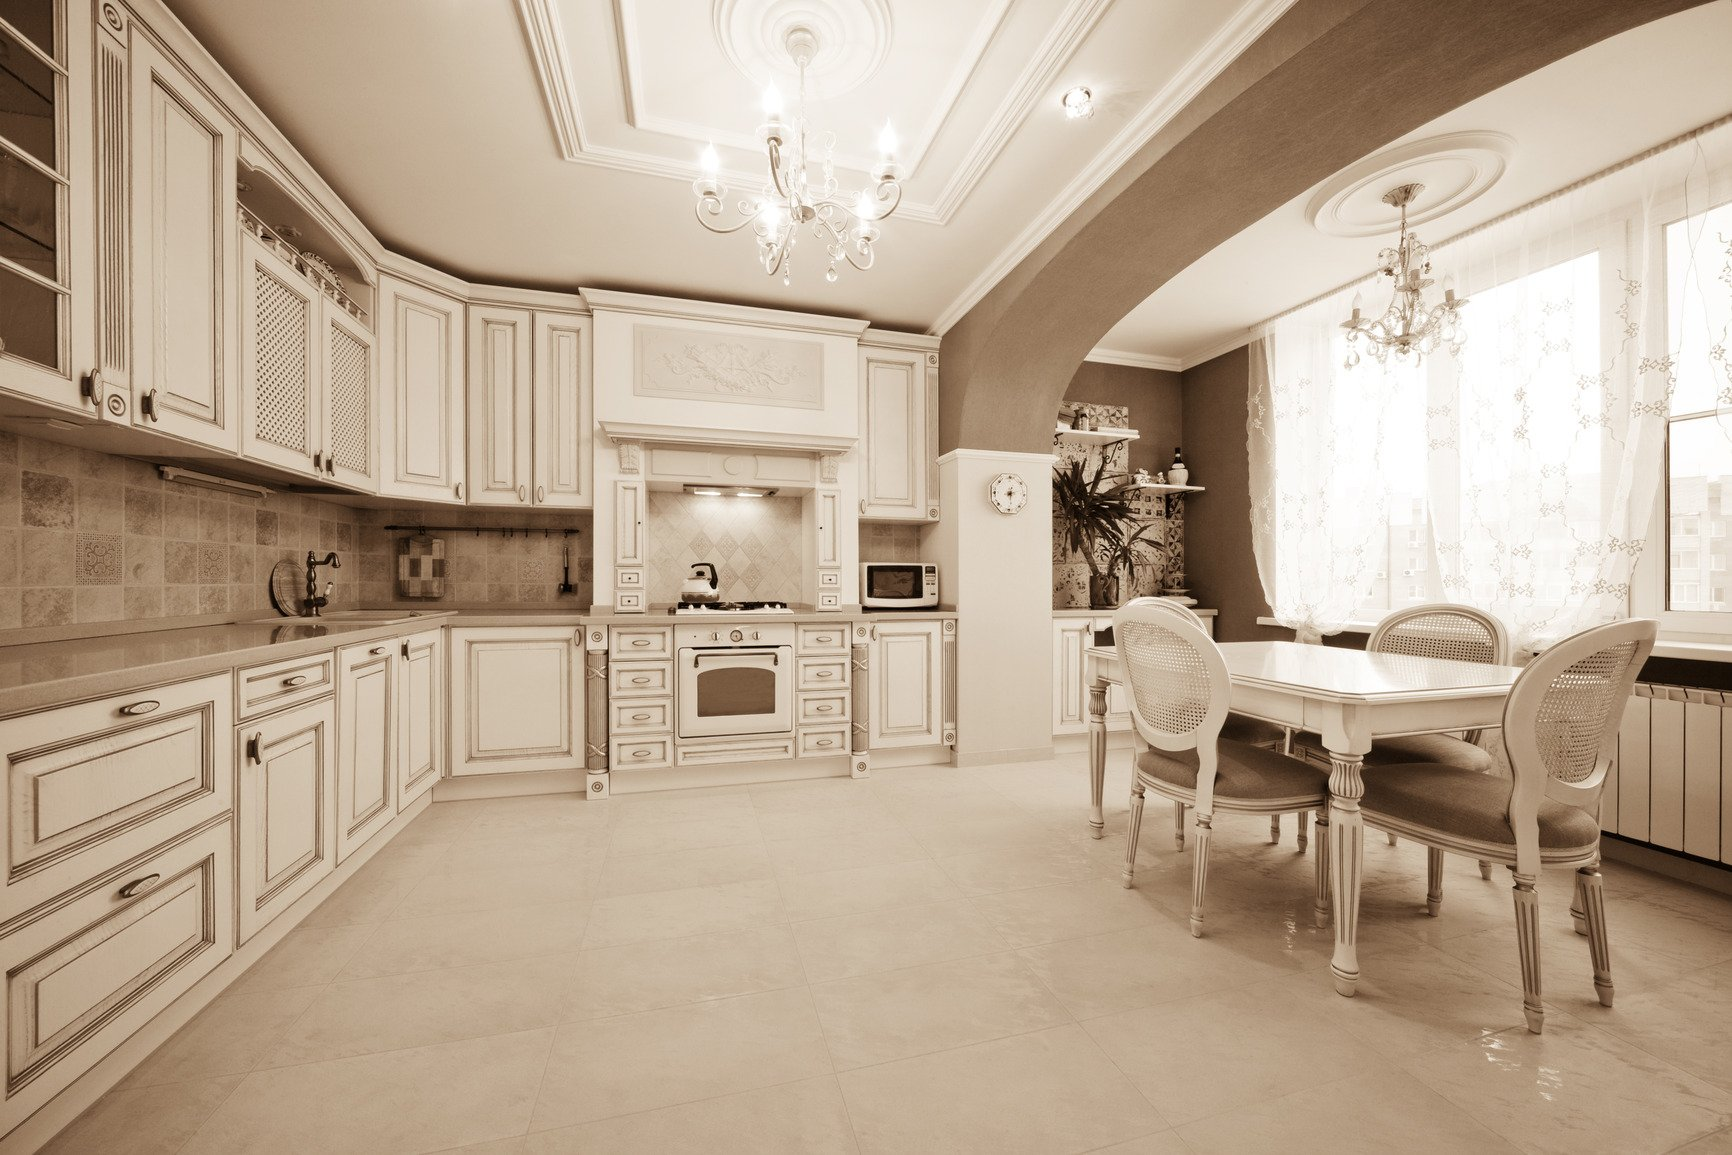 Kitchen cabinets surrey bc custom kitchen cabinets vancouver north burnaby lower mainland